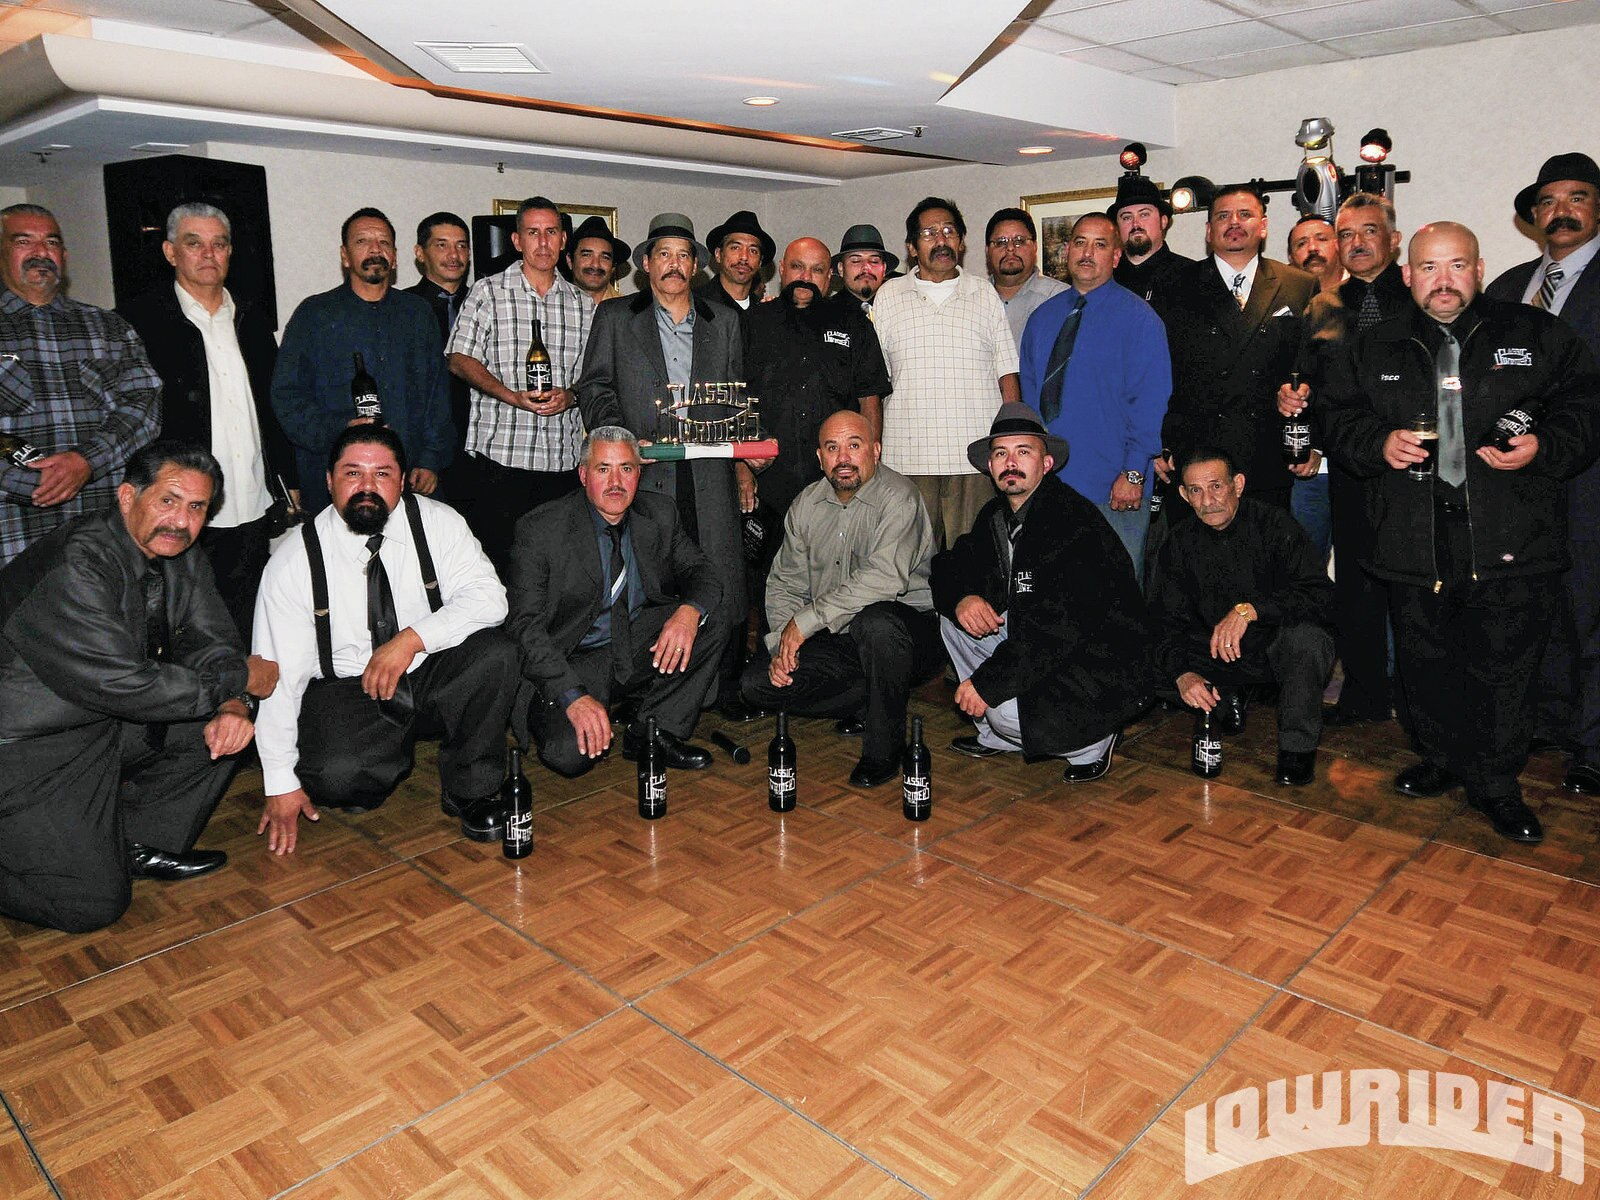 lrmp_1105_01_z-classic_lowriders_club-group_photo3